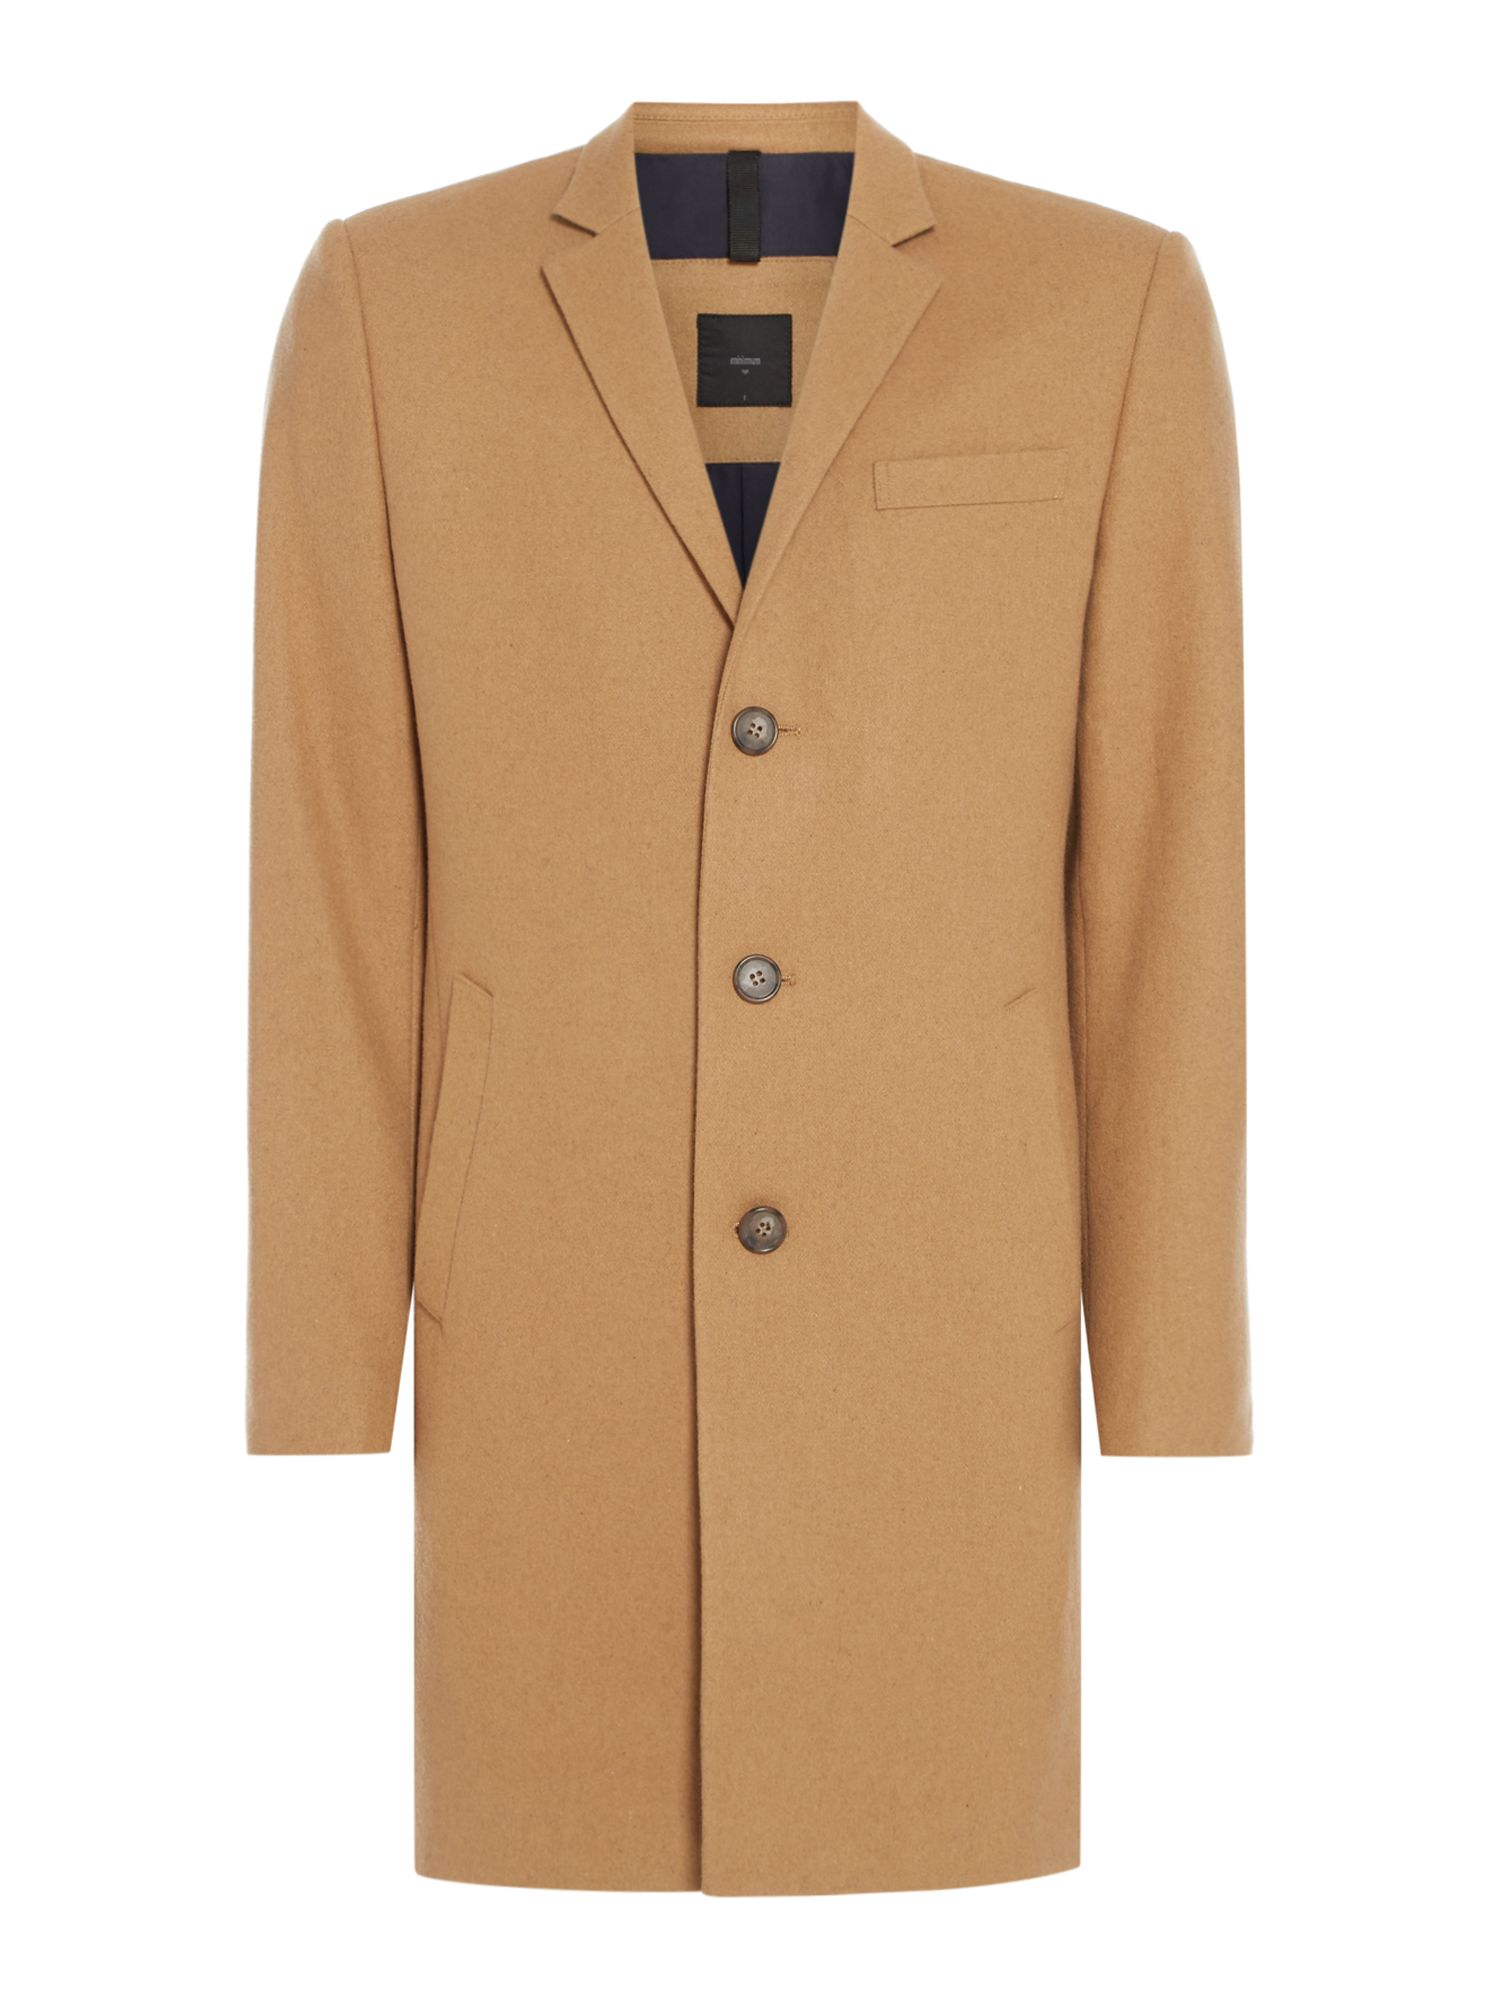 Men's Vintage Style Coats and Jackets Mens Minimum Classic wool coat White £170.00 AT vintagedancer.com